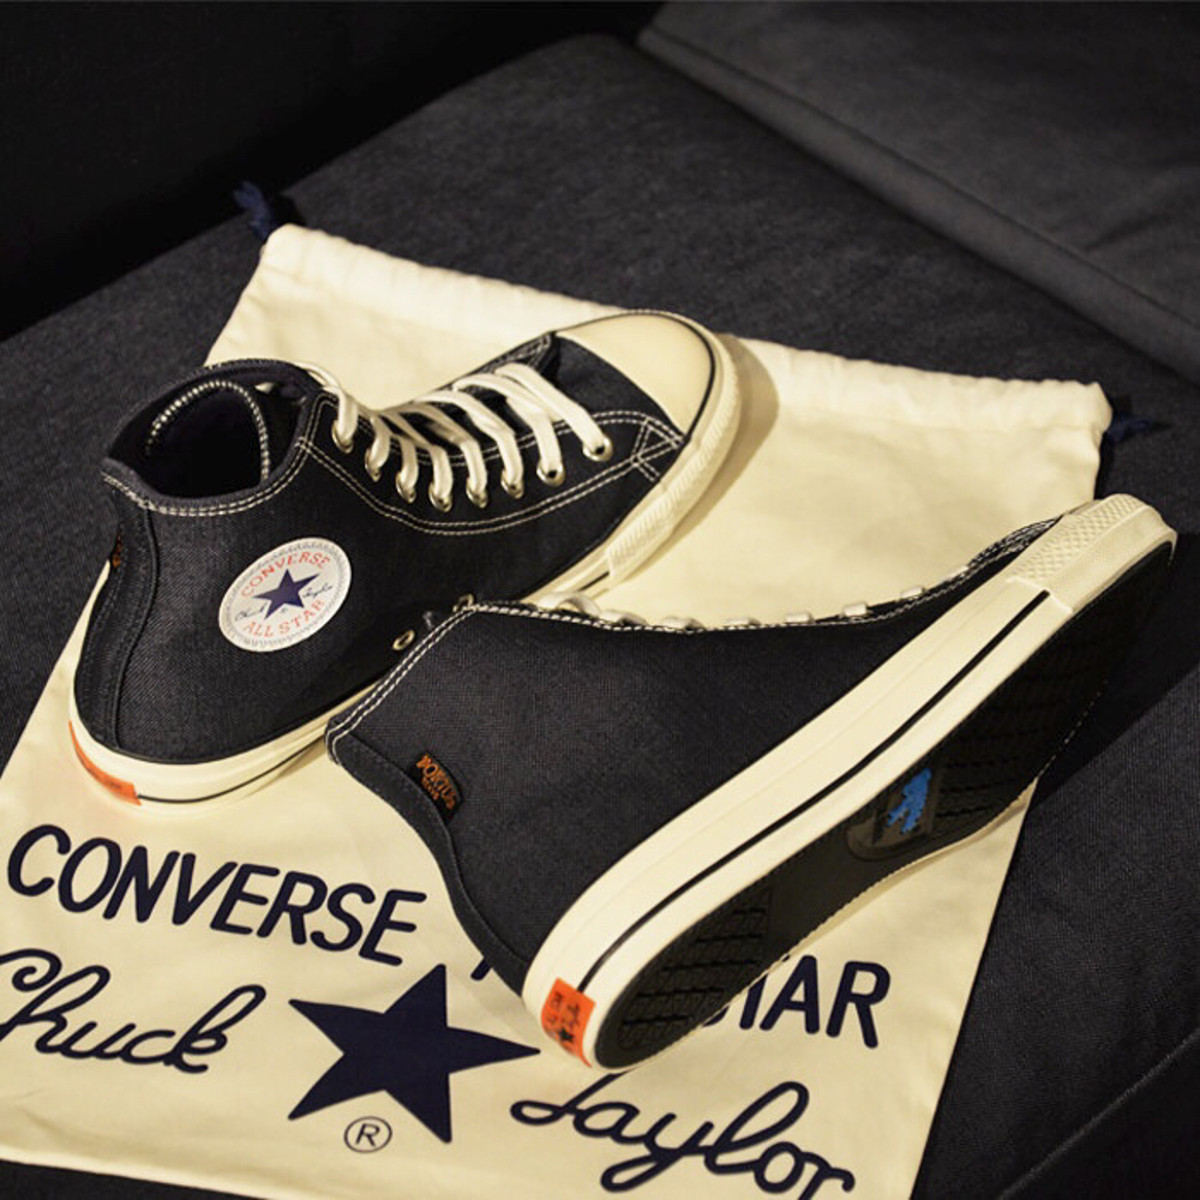 Porter celebrates the 100th Anniversary of the Chuck Taylor